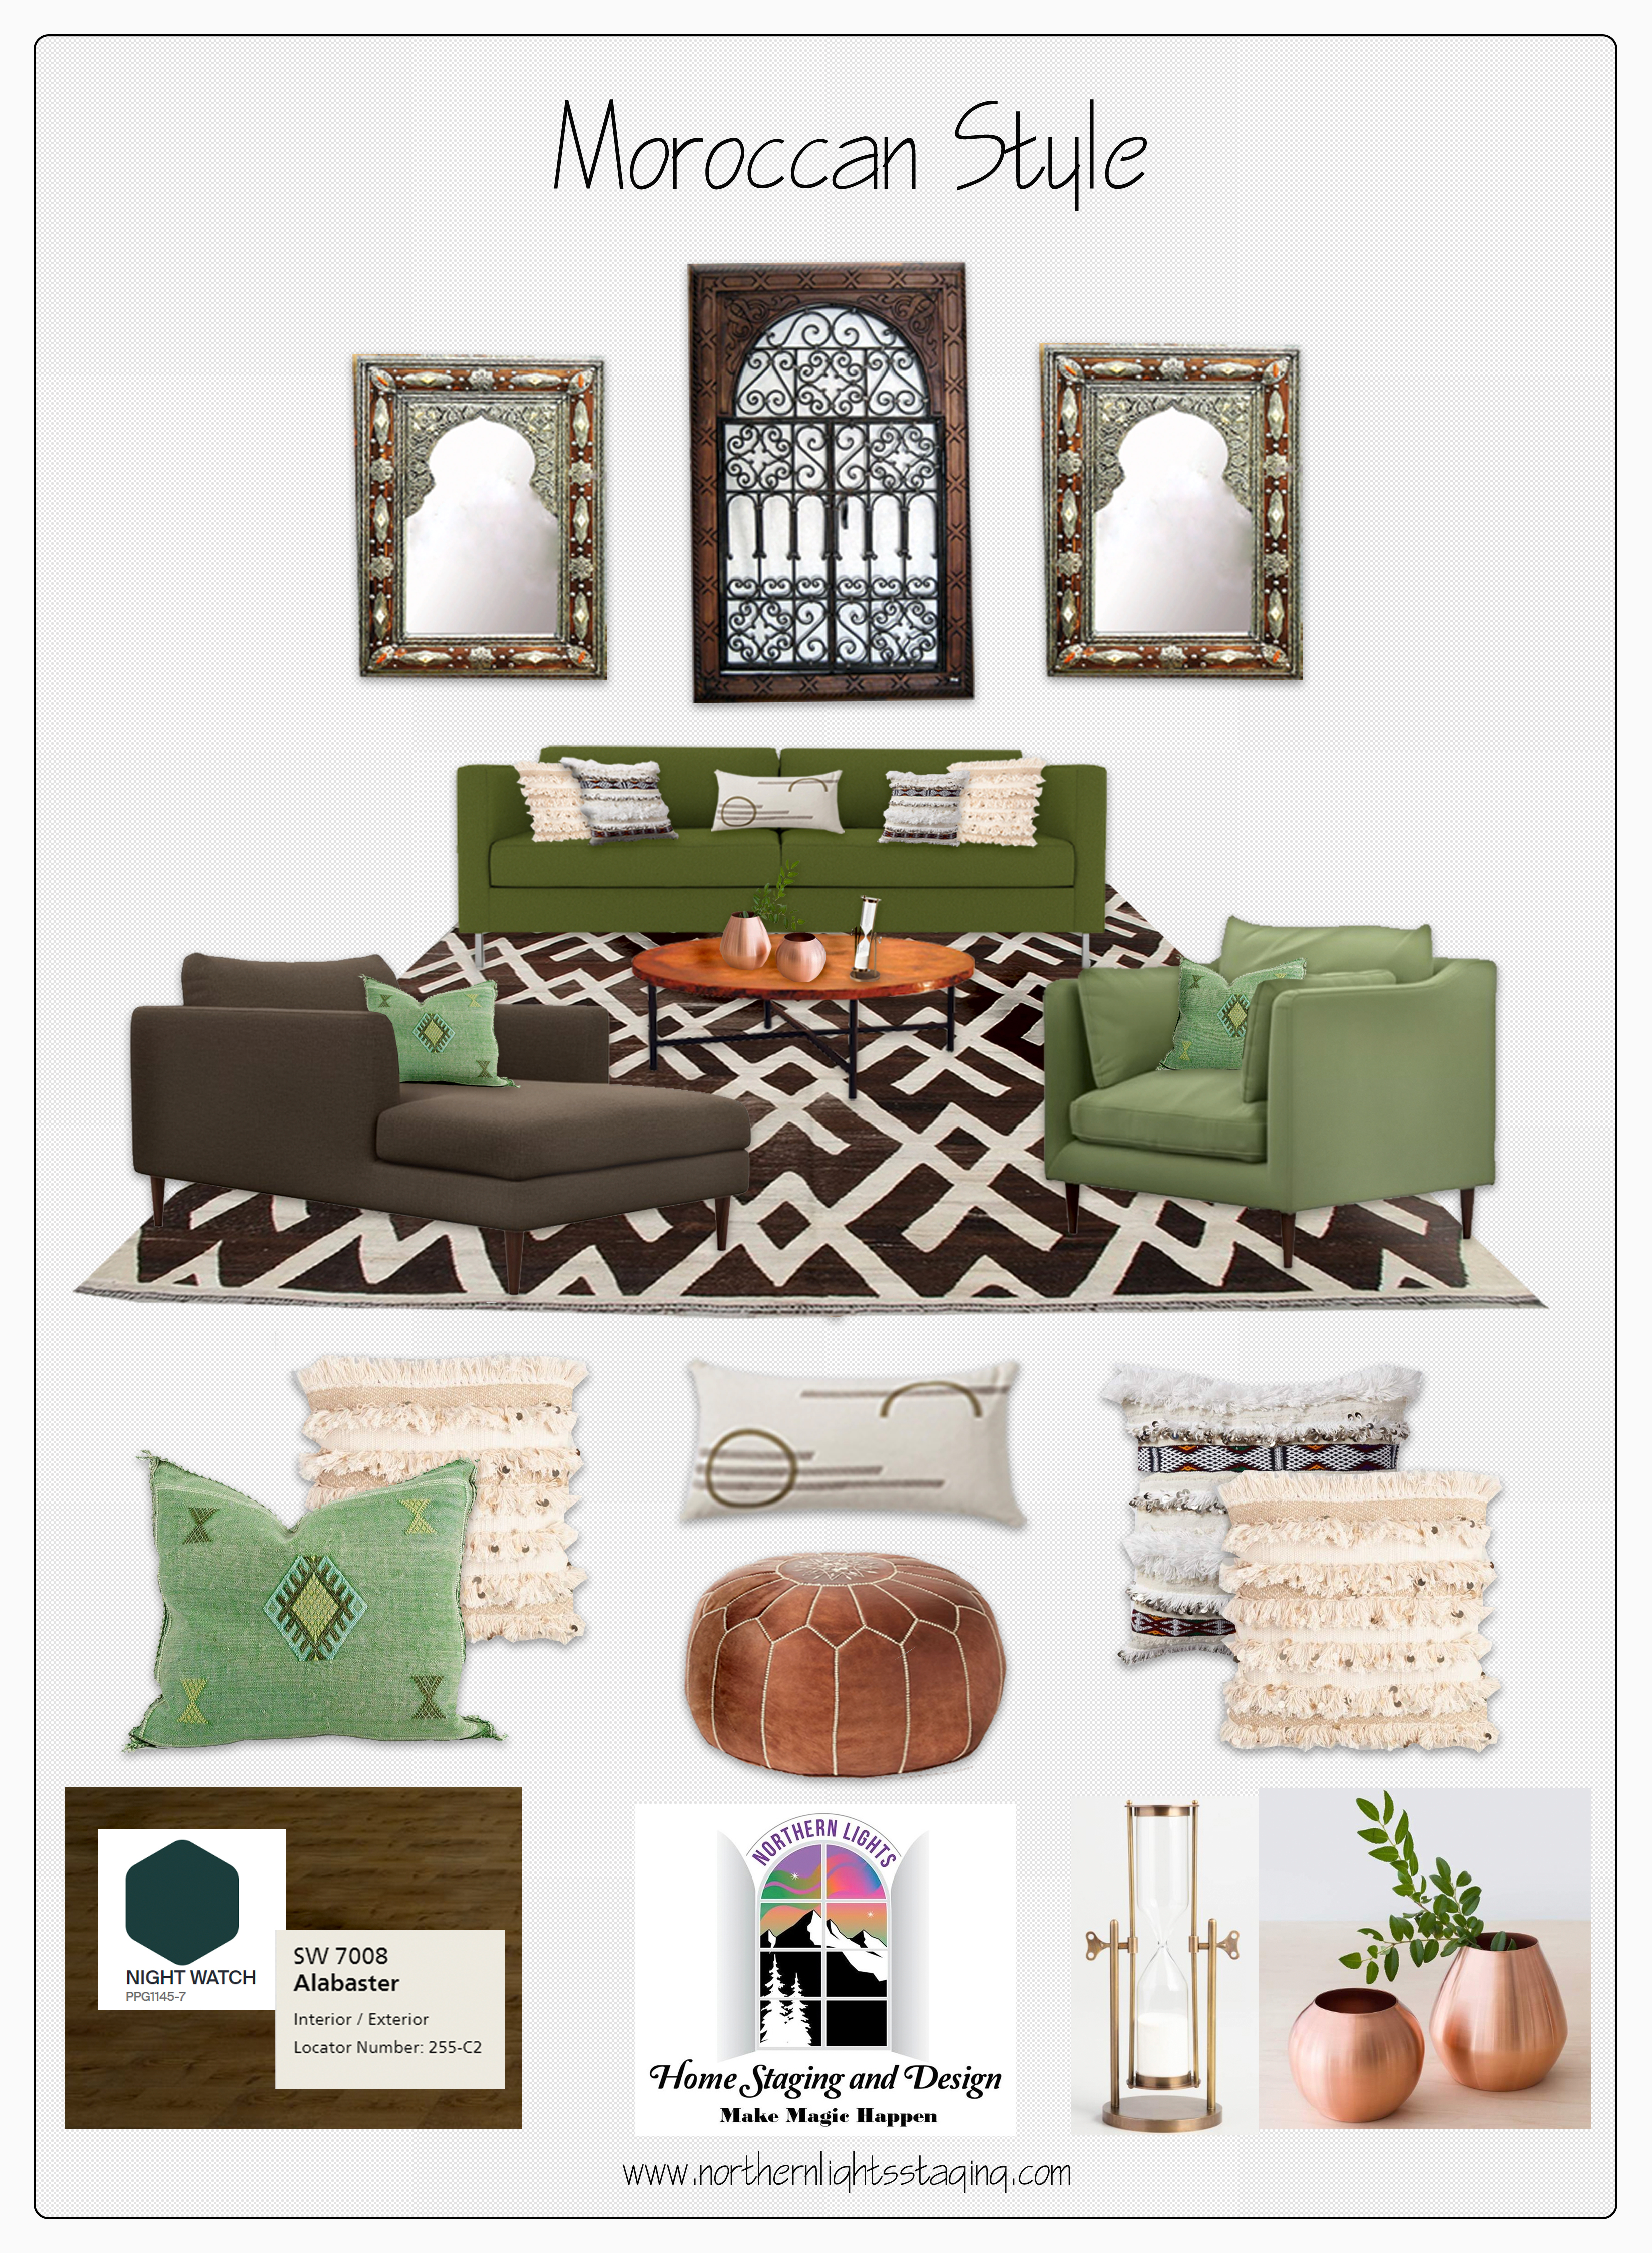 Moroccan Style Living Room Concept Board